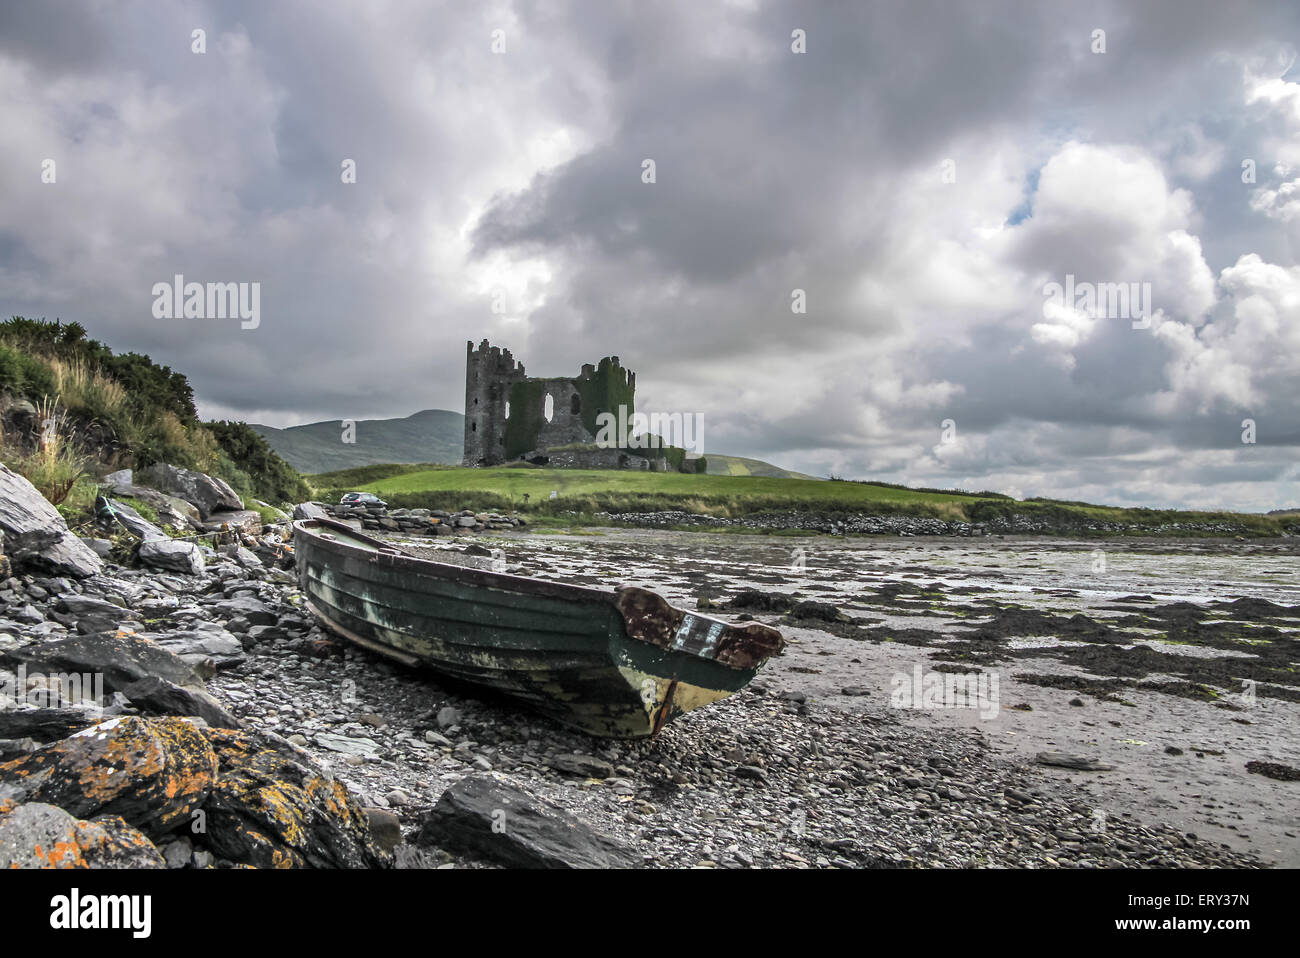 Ballycarbery Castle with old boat on the Ring of Kerry in Cahersiveen, County Kerry, Ireland - Stock Image